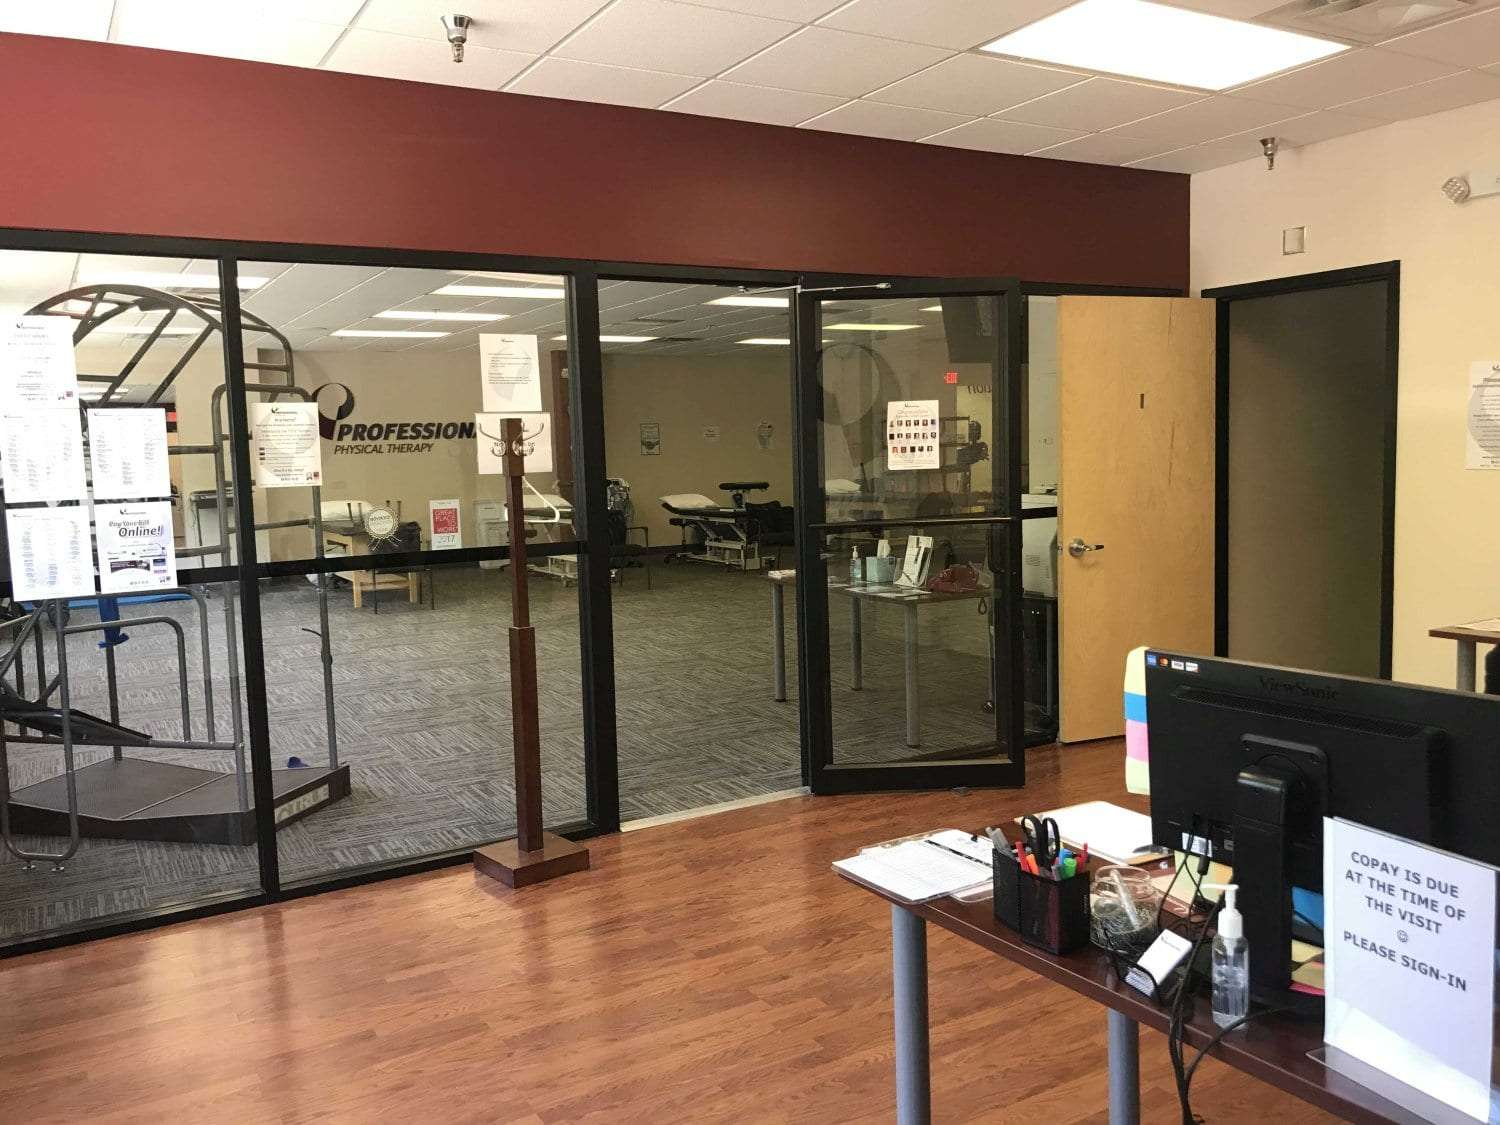 This is an image of our physical therapy clinic in Ridgefield, Connecticut.